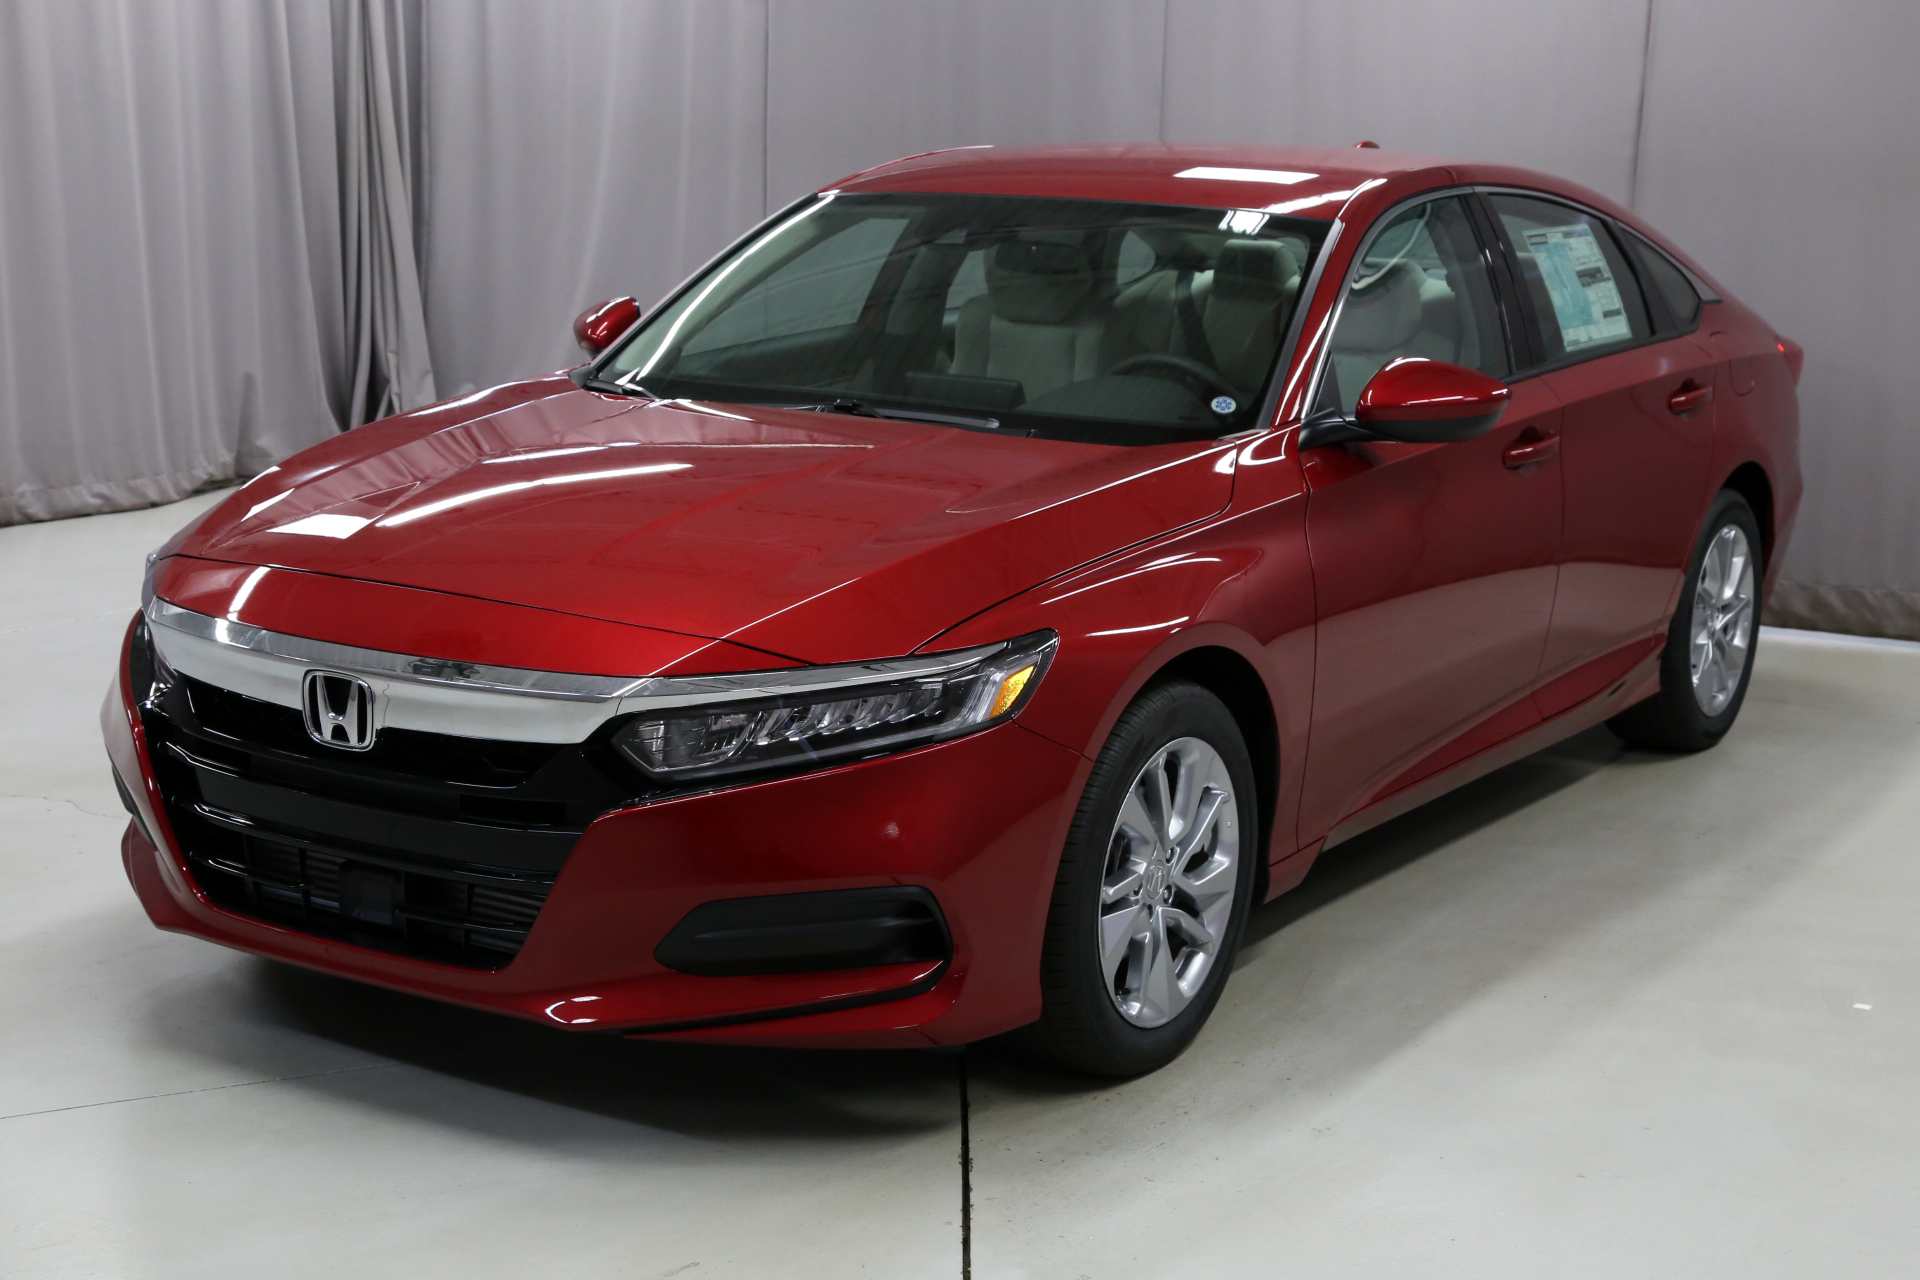 2018 Honda Accord Sedan LX CVT